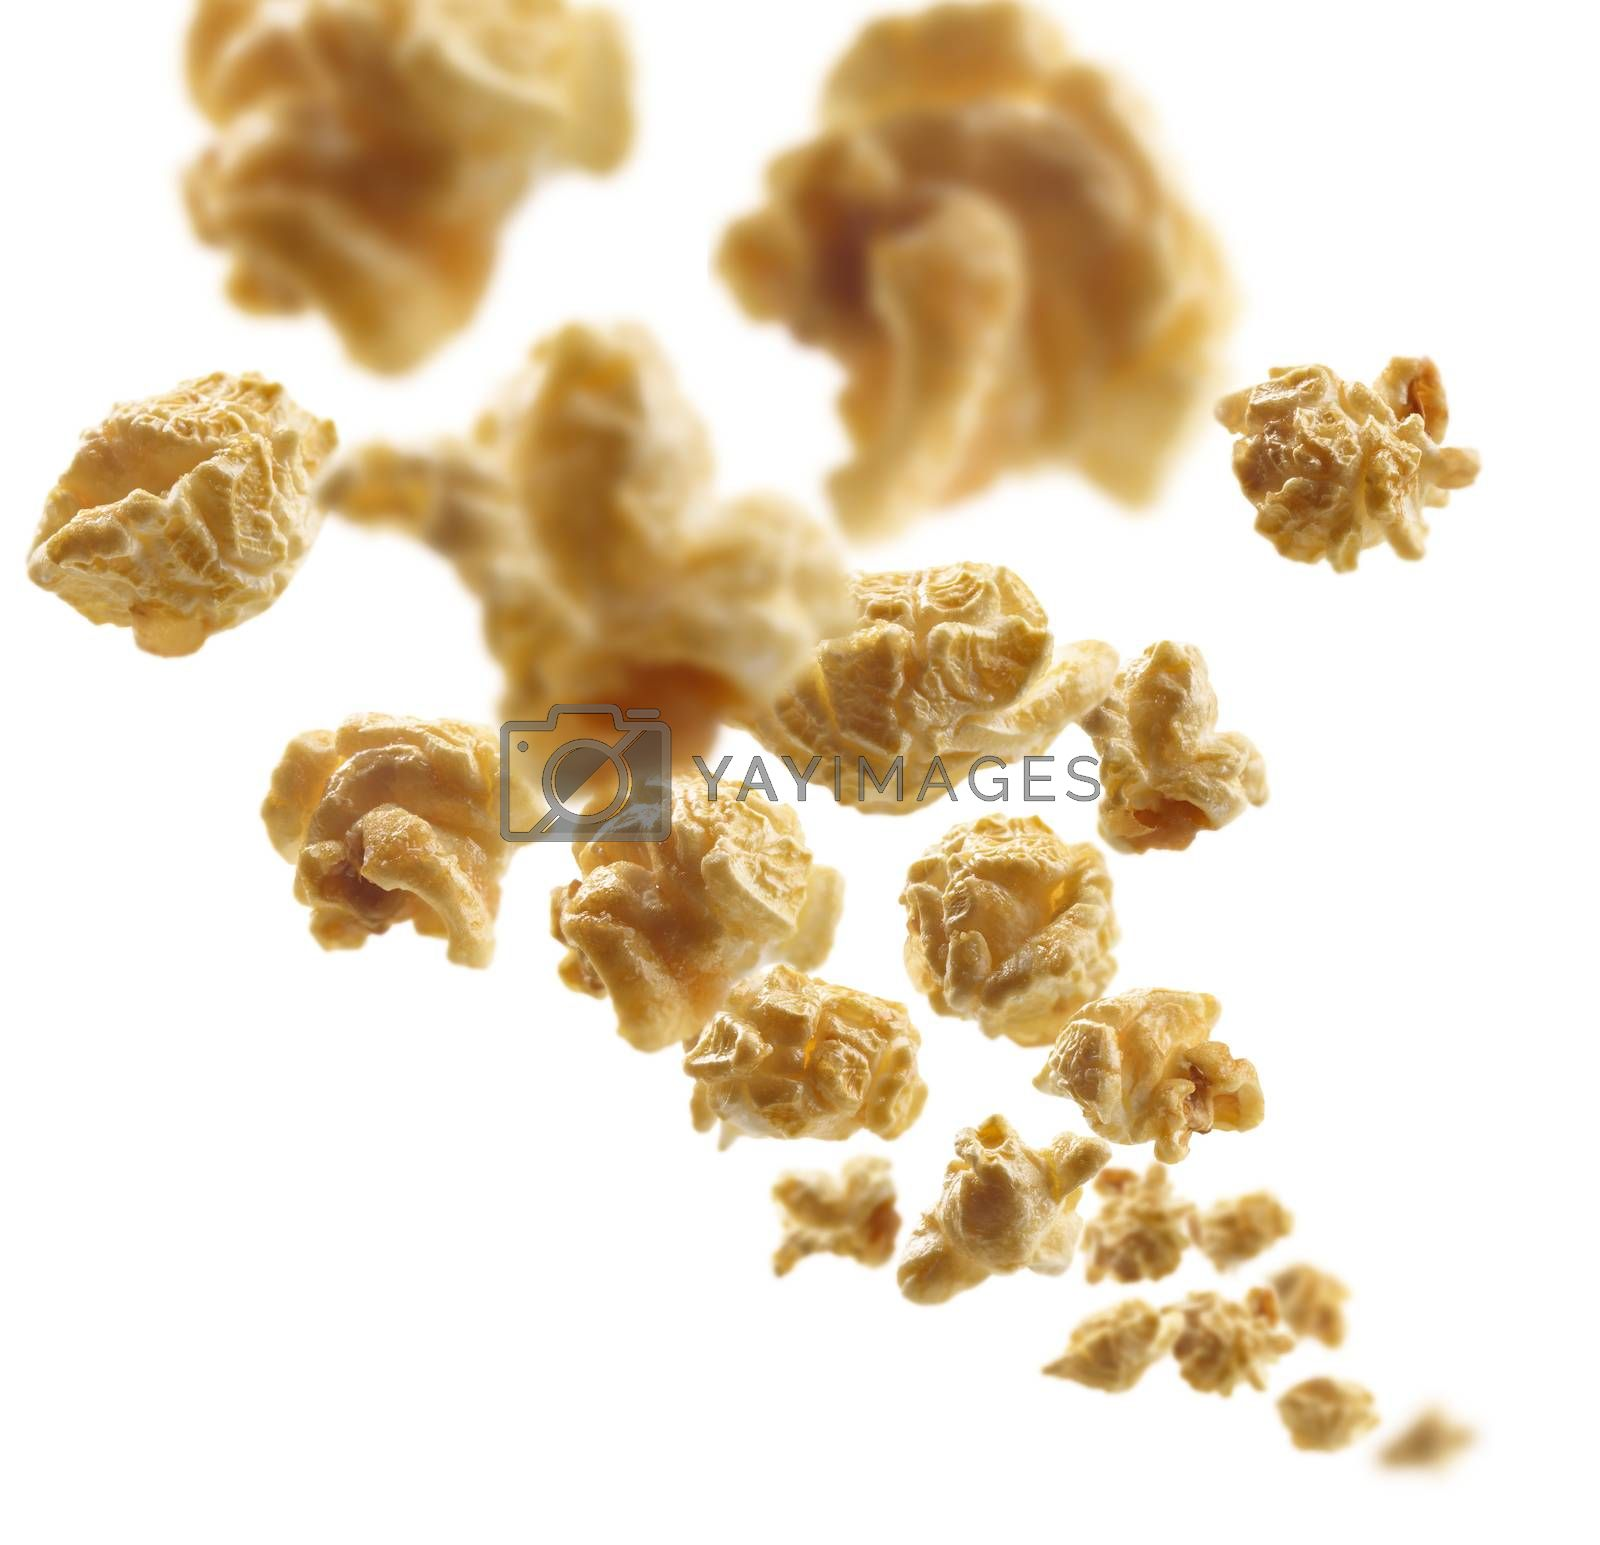 Caramel-flavored popcorn levitates on a white background.